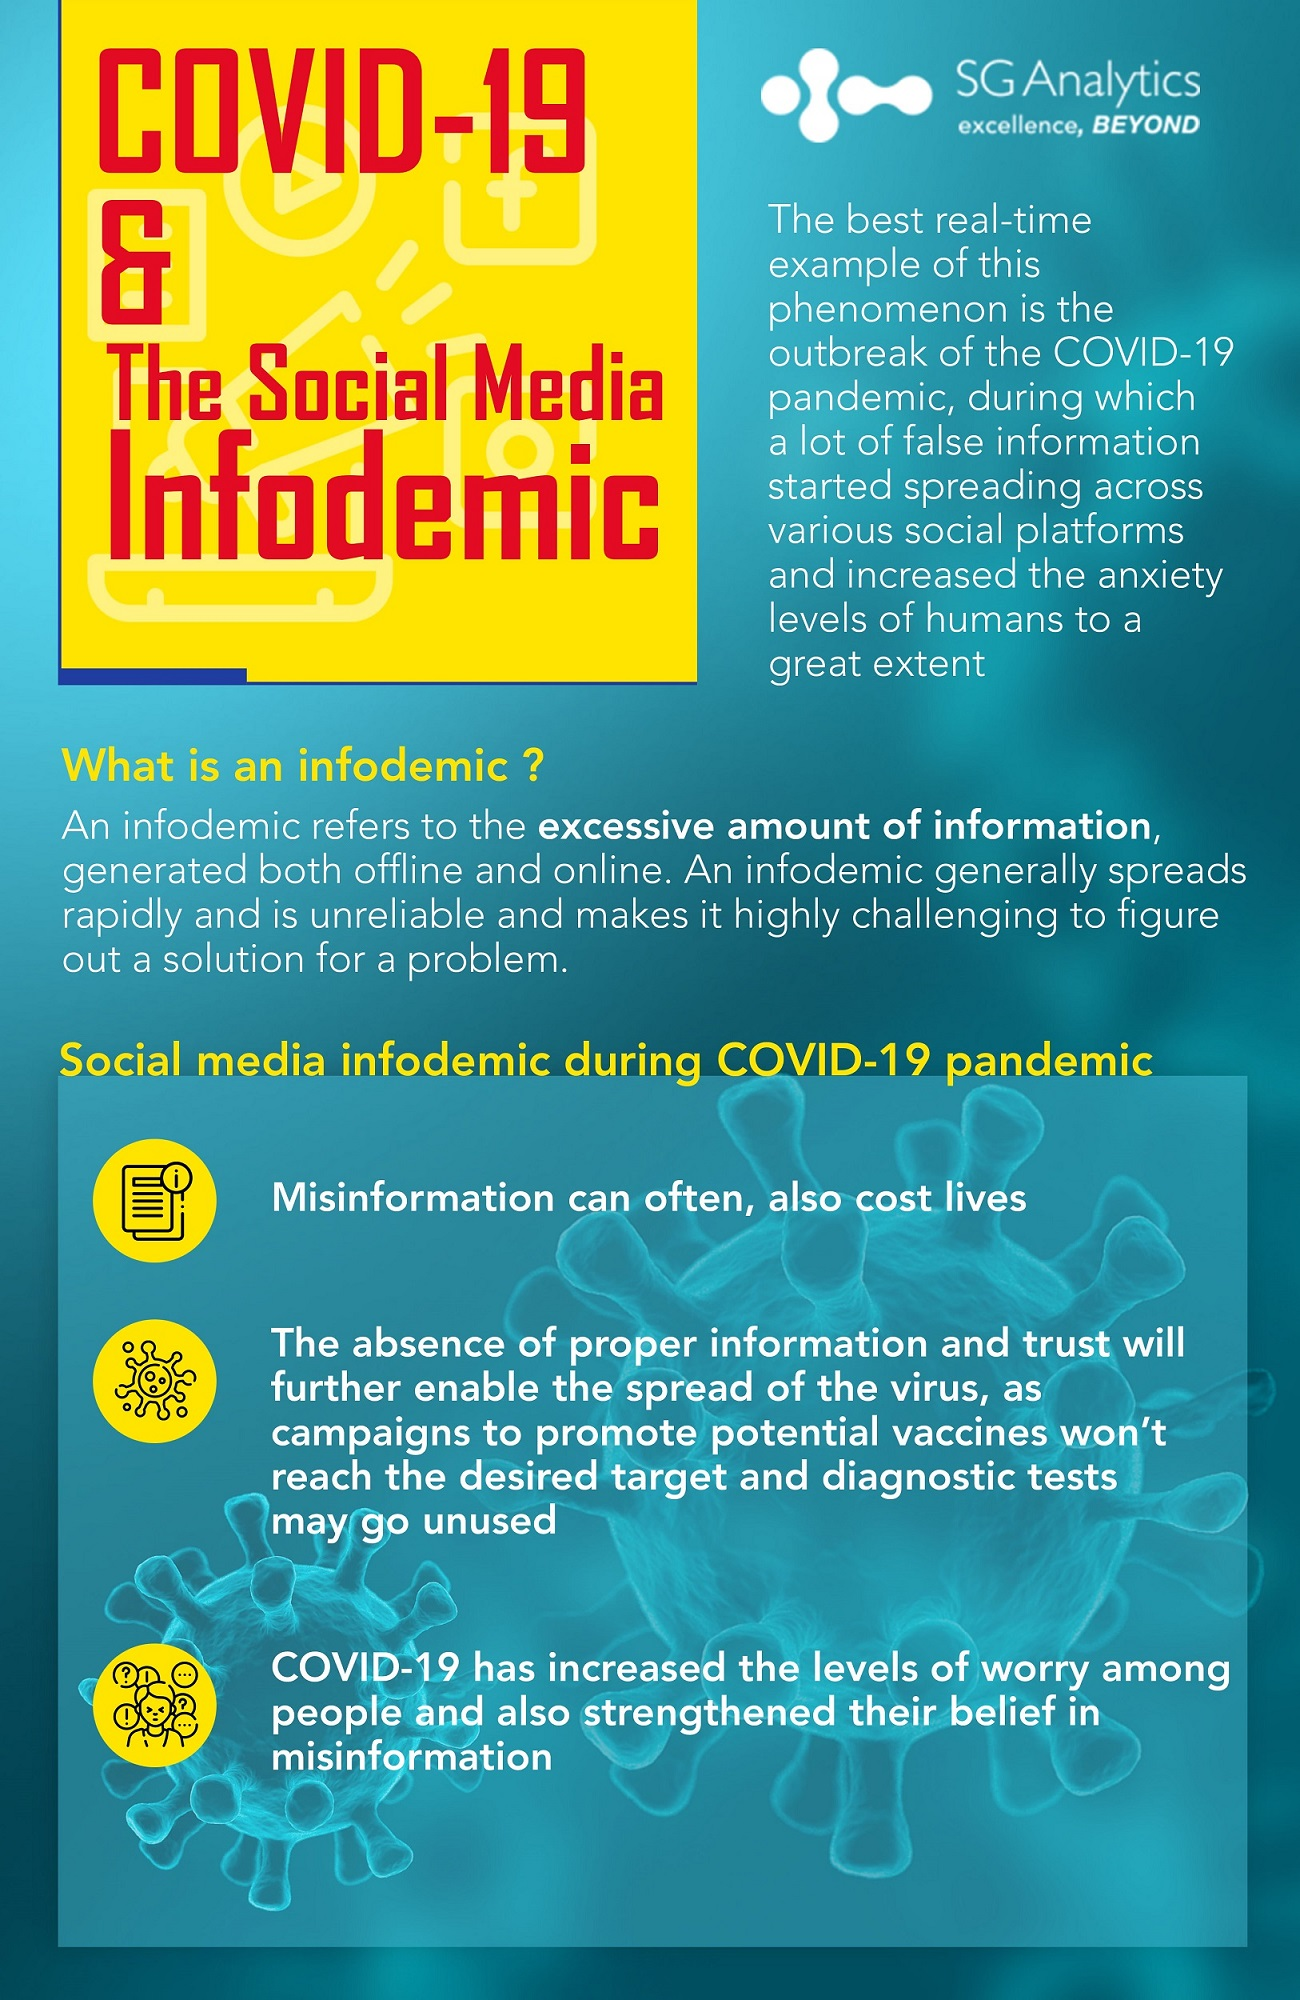 What is social media infodemic?